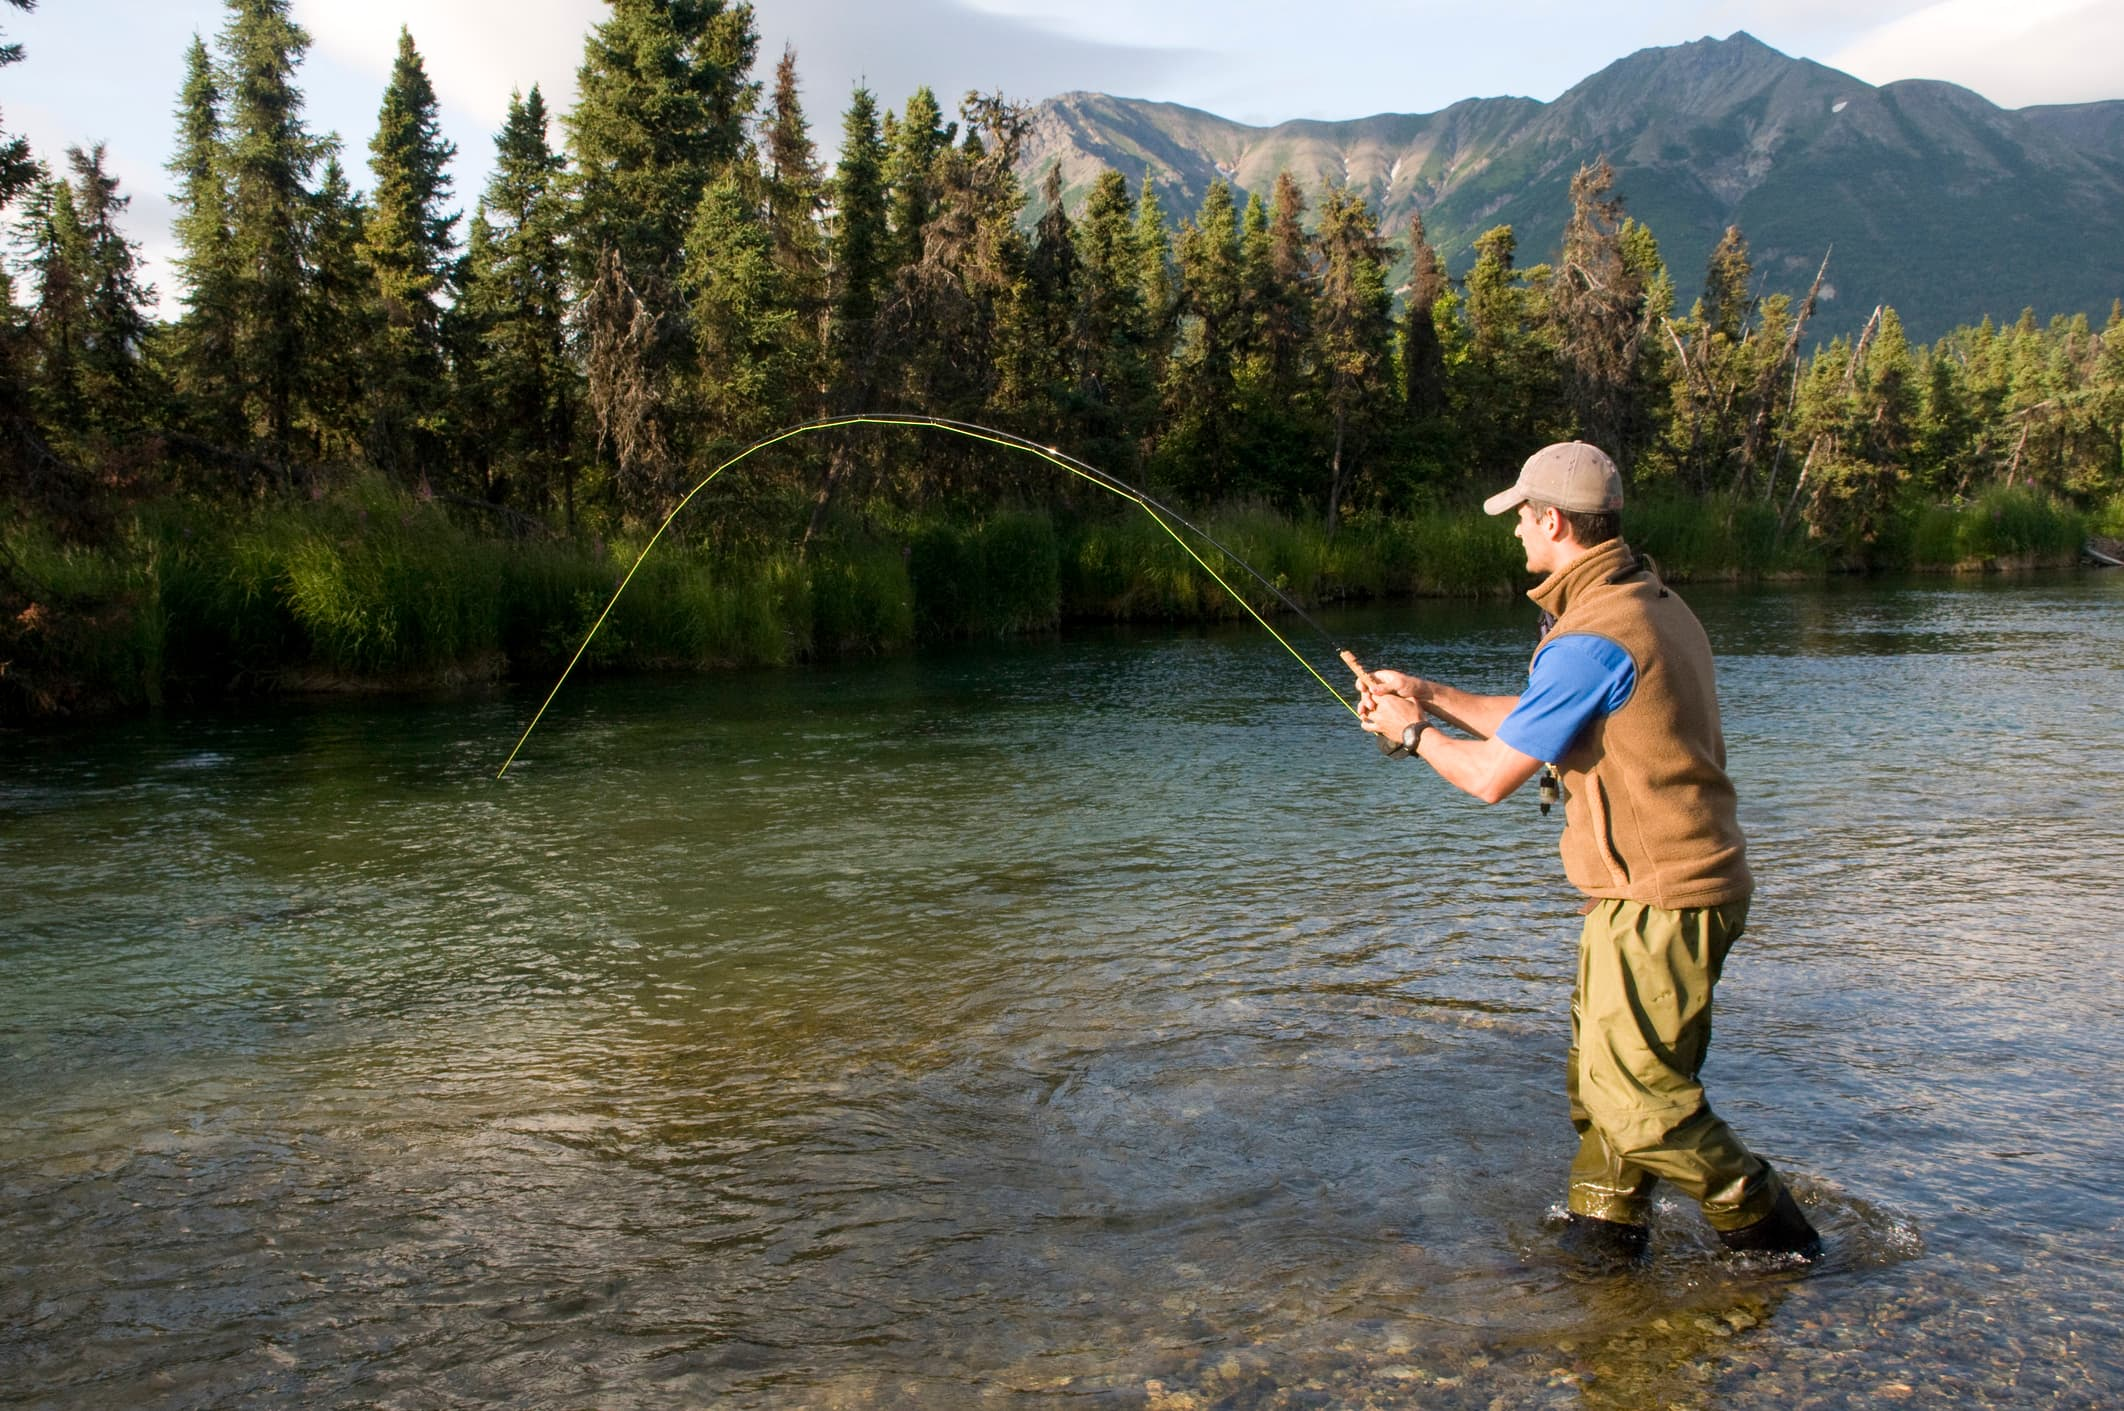 man with fishing pole standing in a river